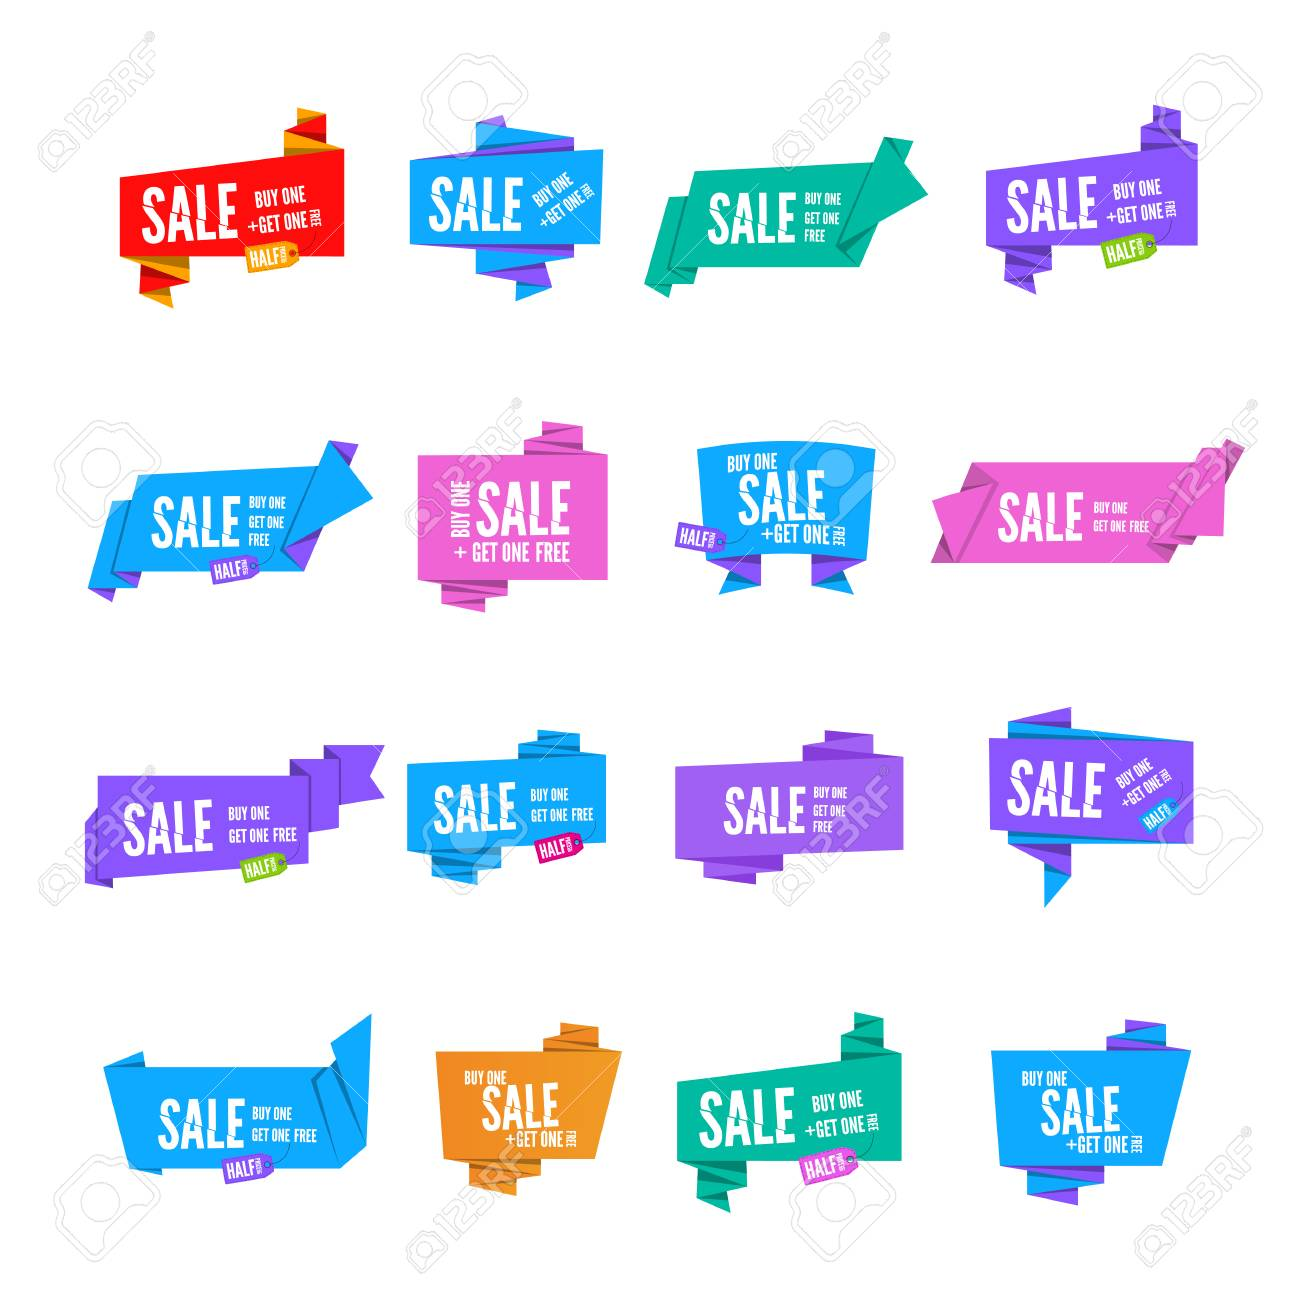 Colorful Origami Paper Speech Bubbles Collection Set Of Flat